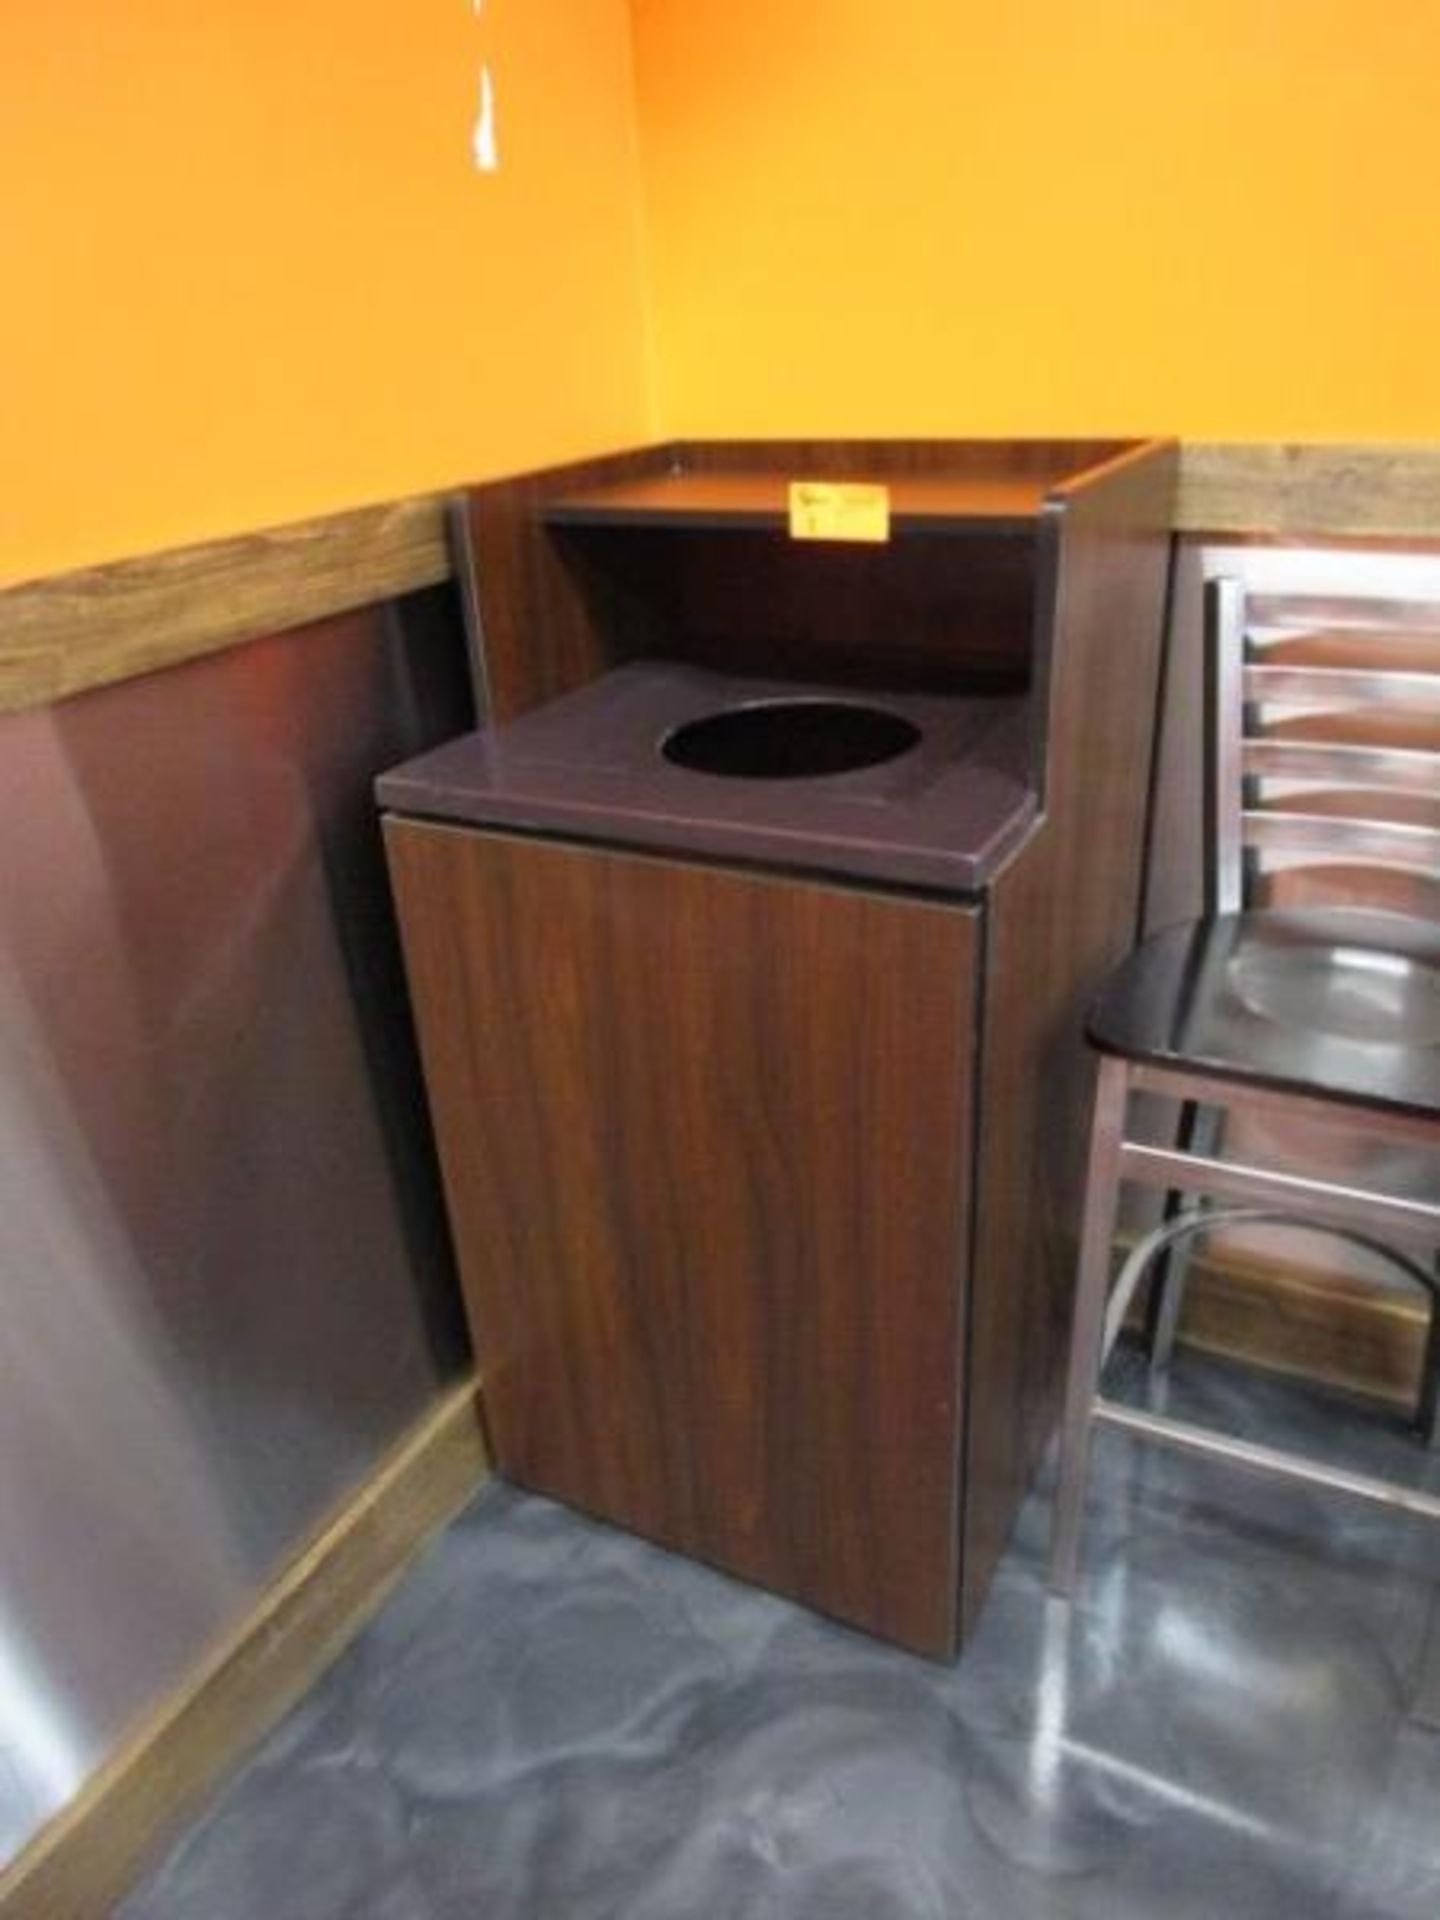 Lot 8 - Laminate Trash Receptacle w/ Rubbermaid Plastic Can